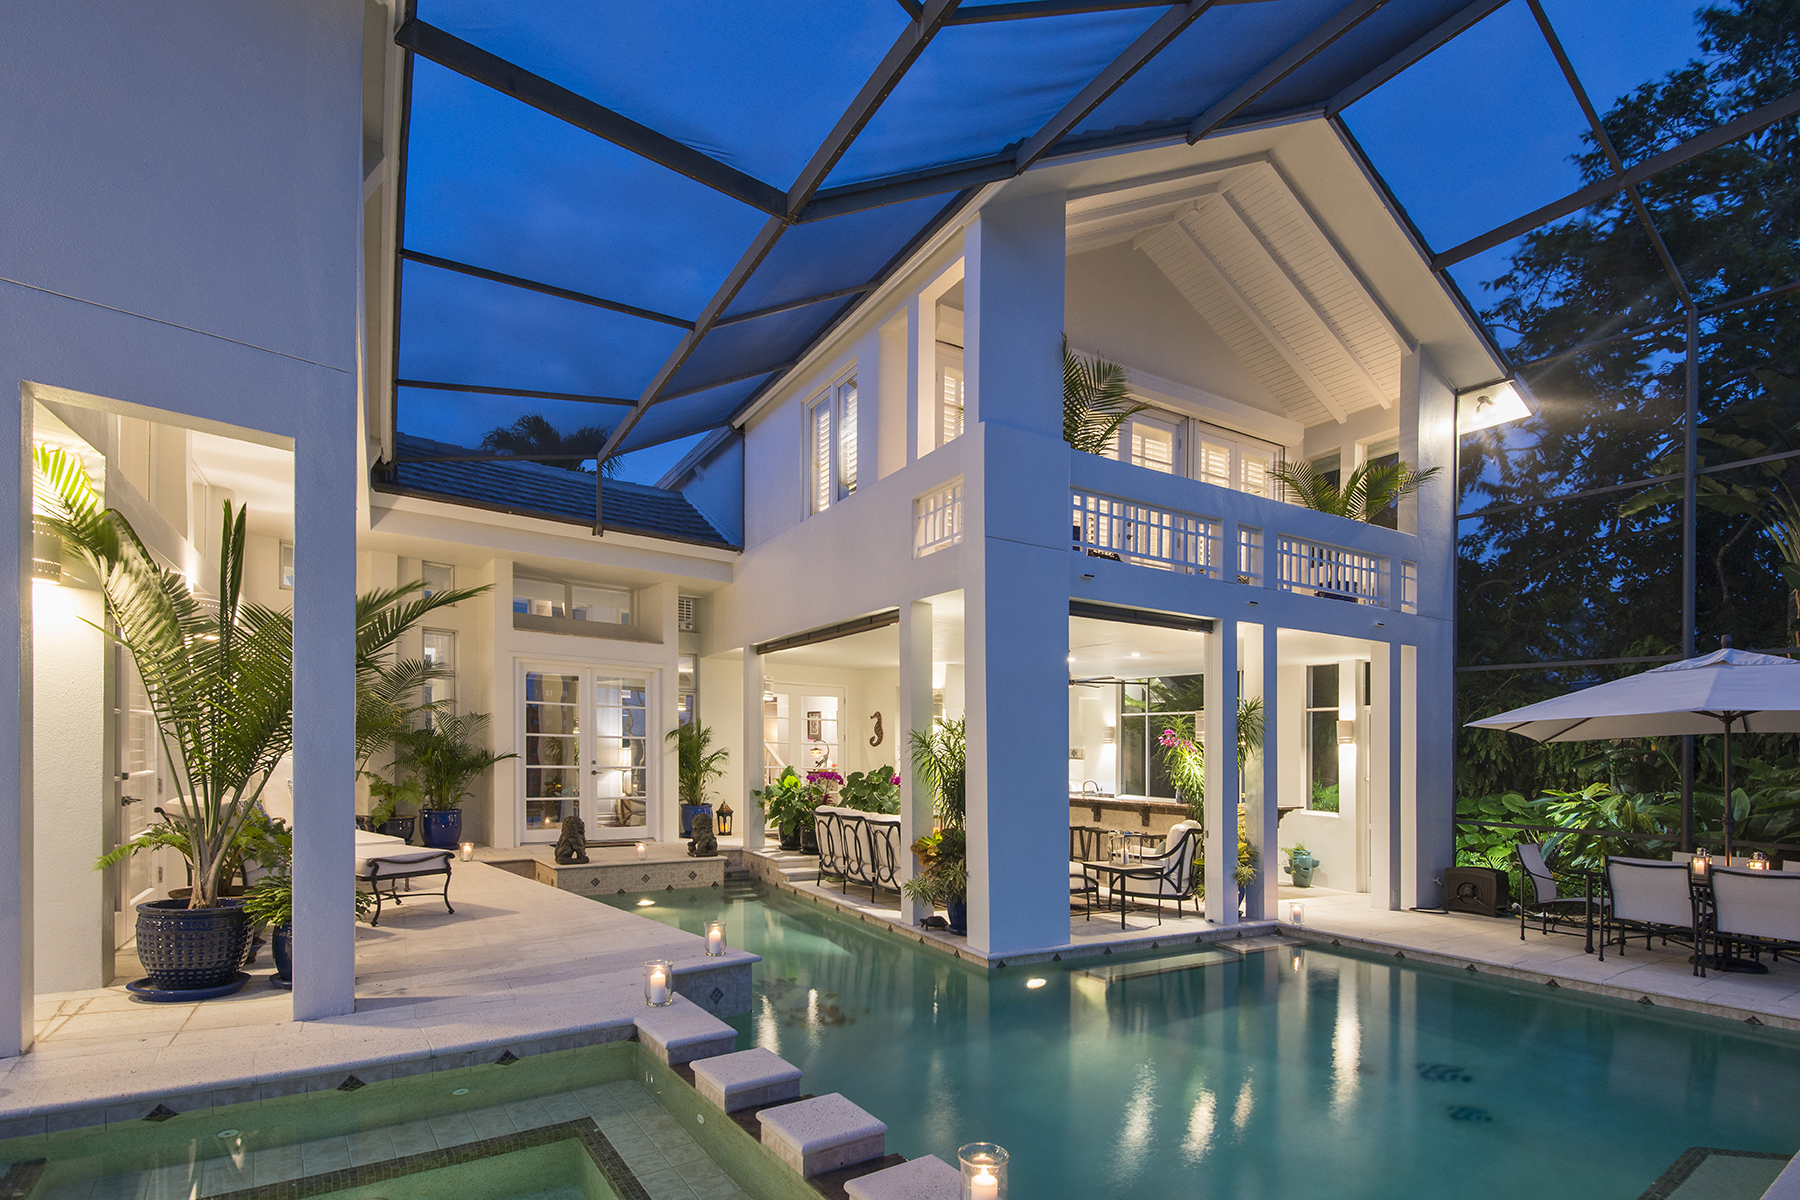 Single Family Home for Sale at COQUINA SANDS 584 Banyan Blvd, Naples, Florida, 34102 United States